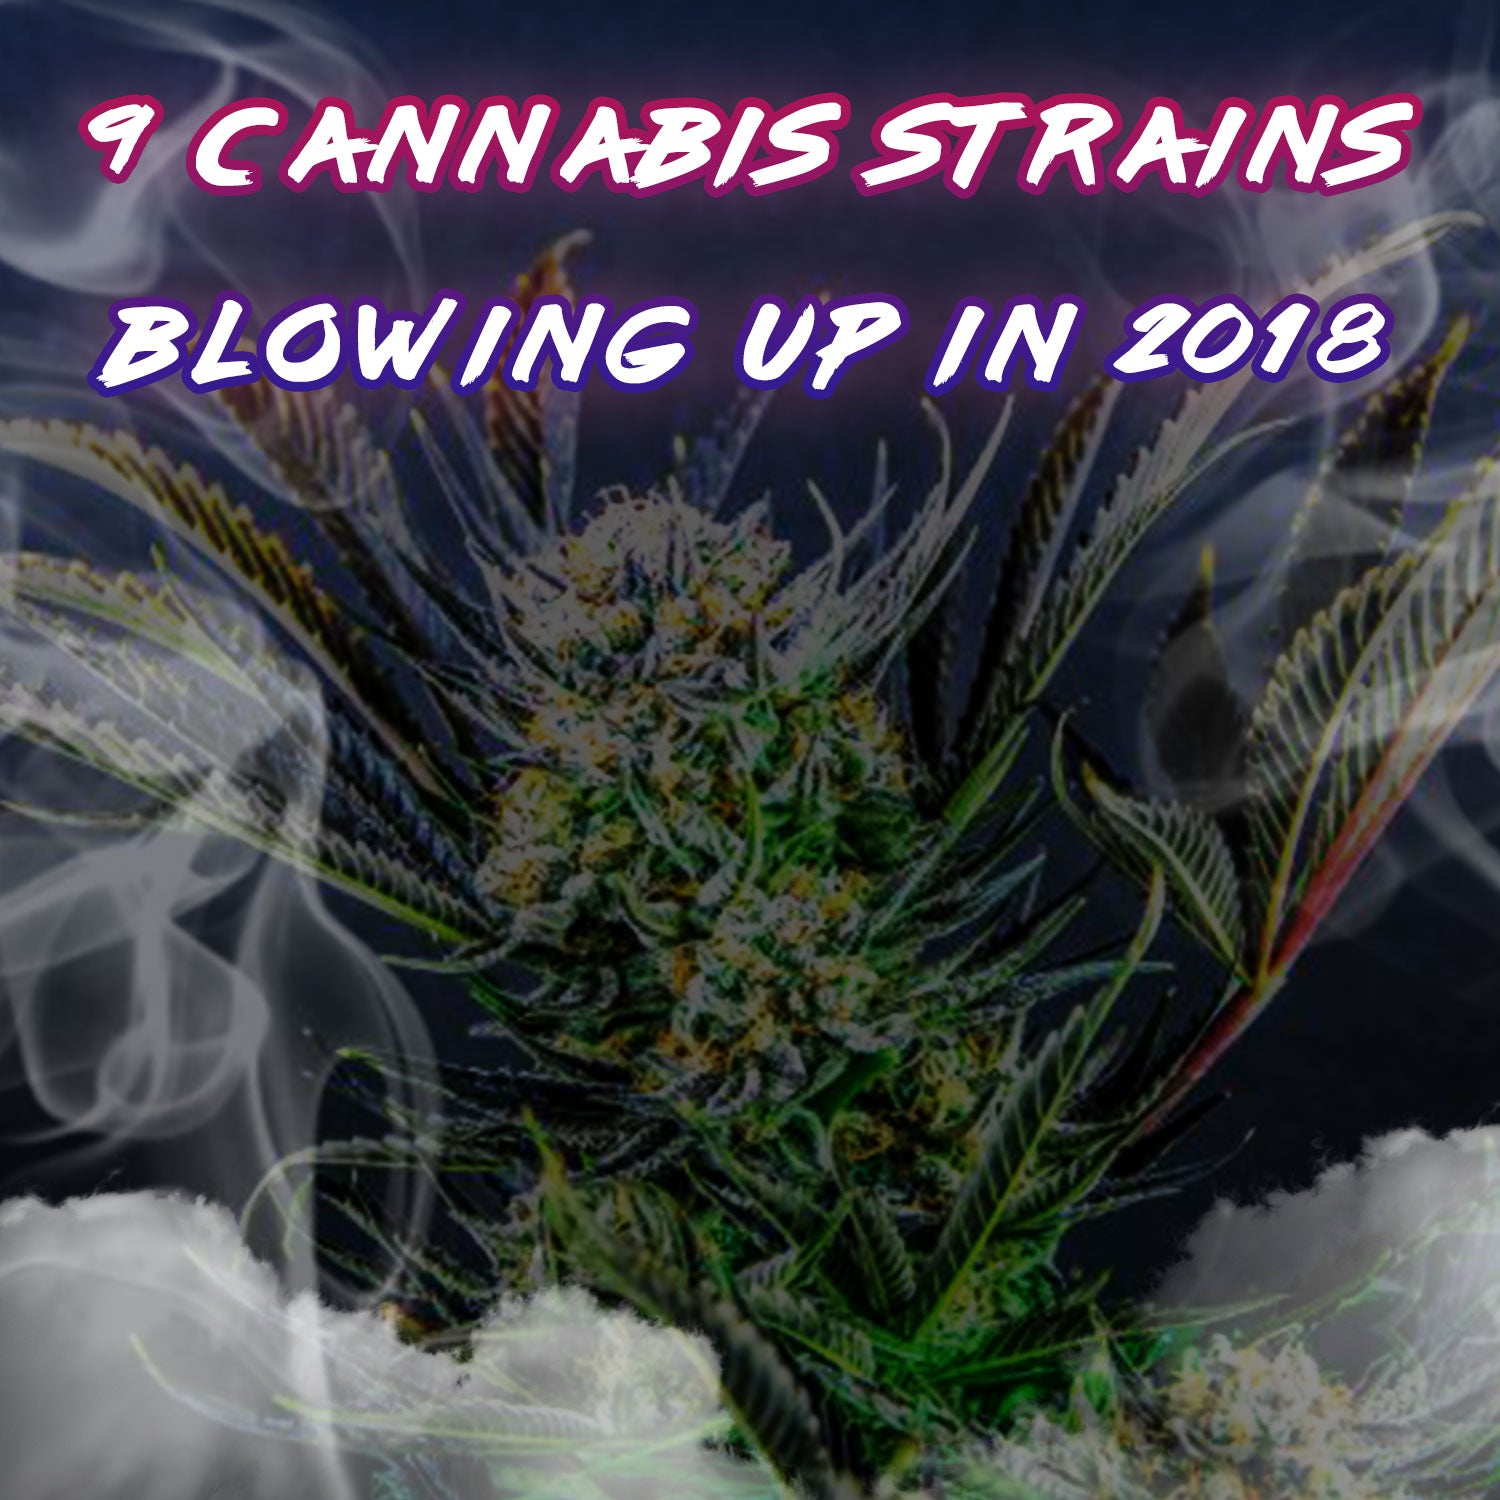 9 Cannabis Strains Blowing Up In 2018 - KLOUD9